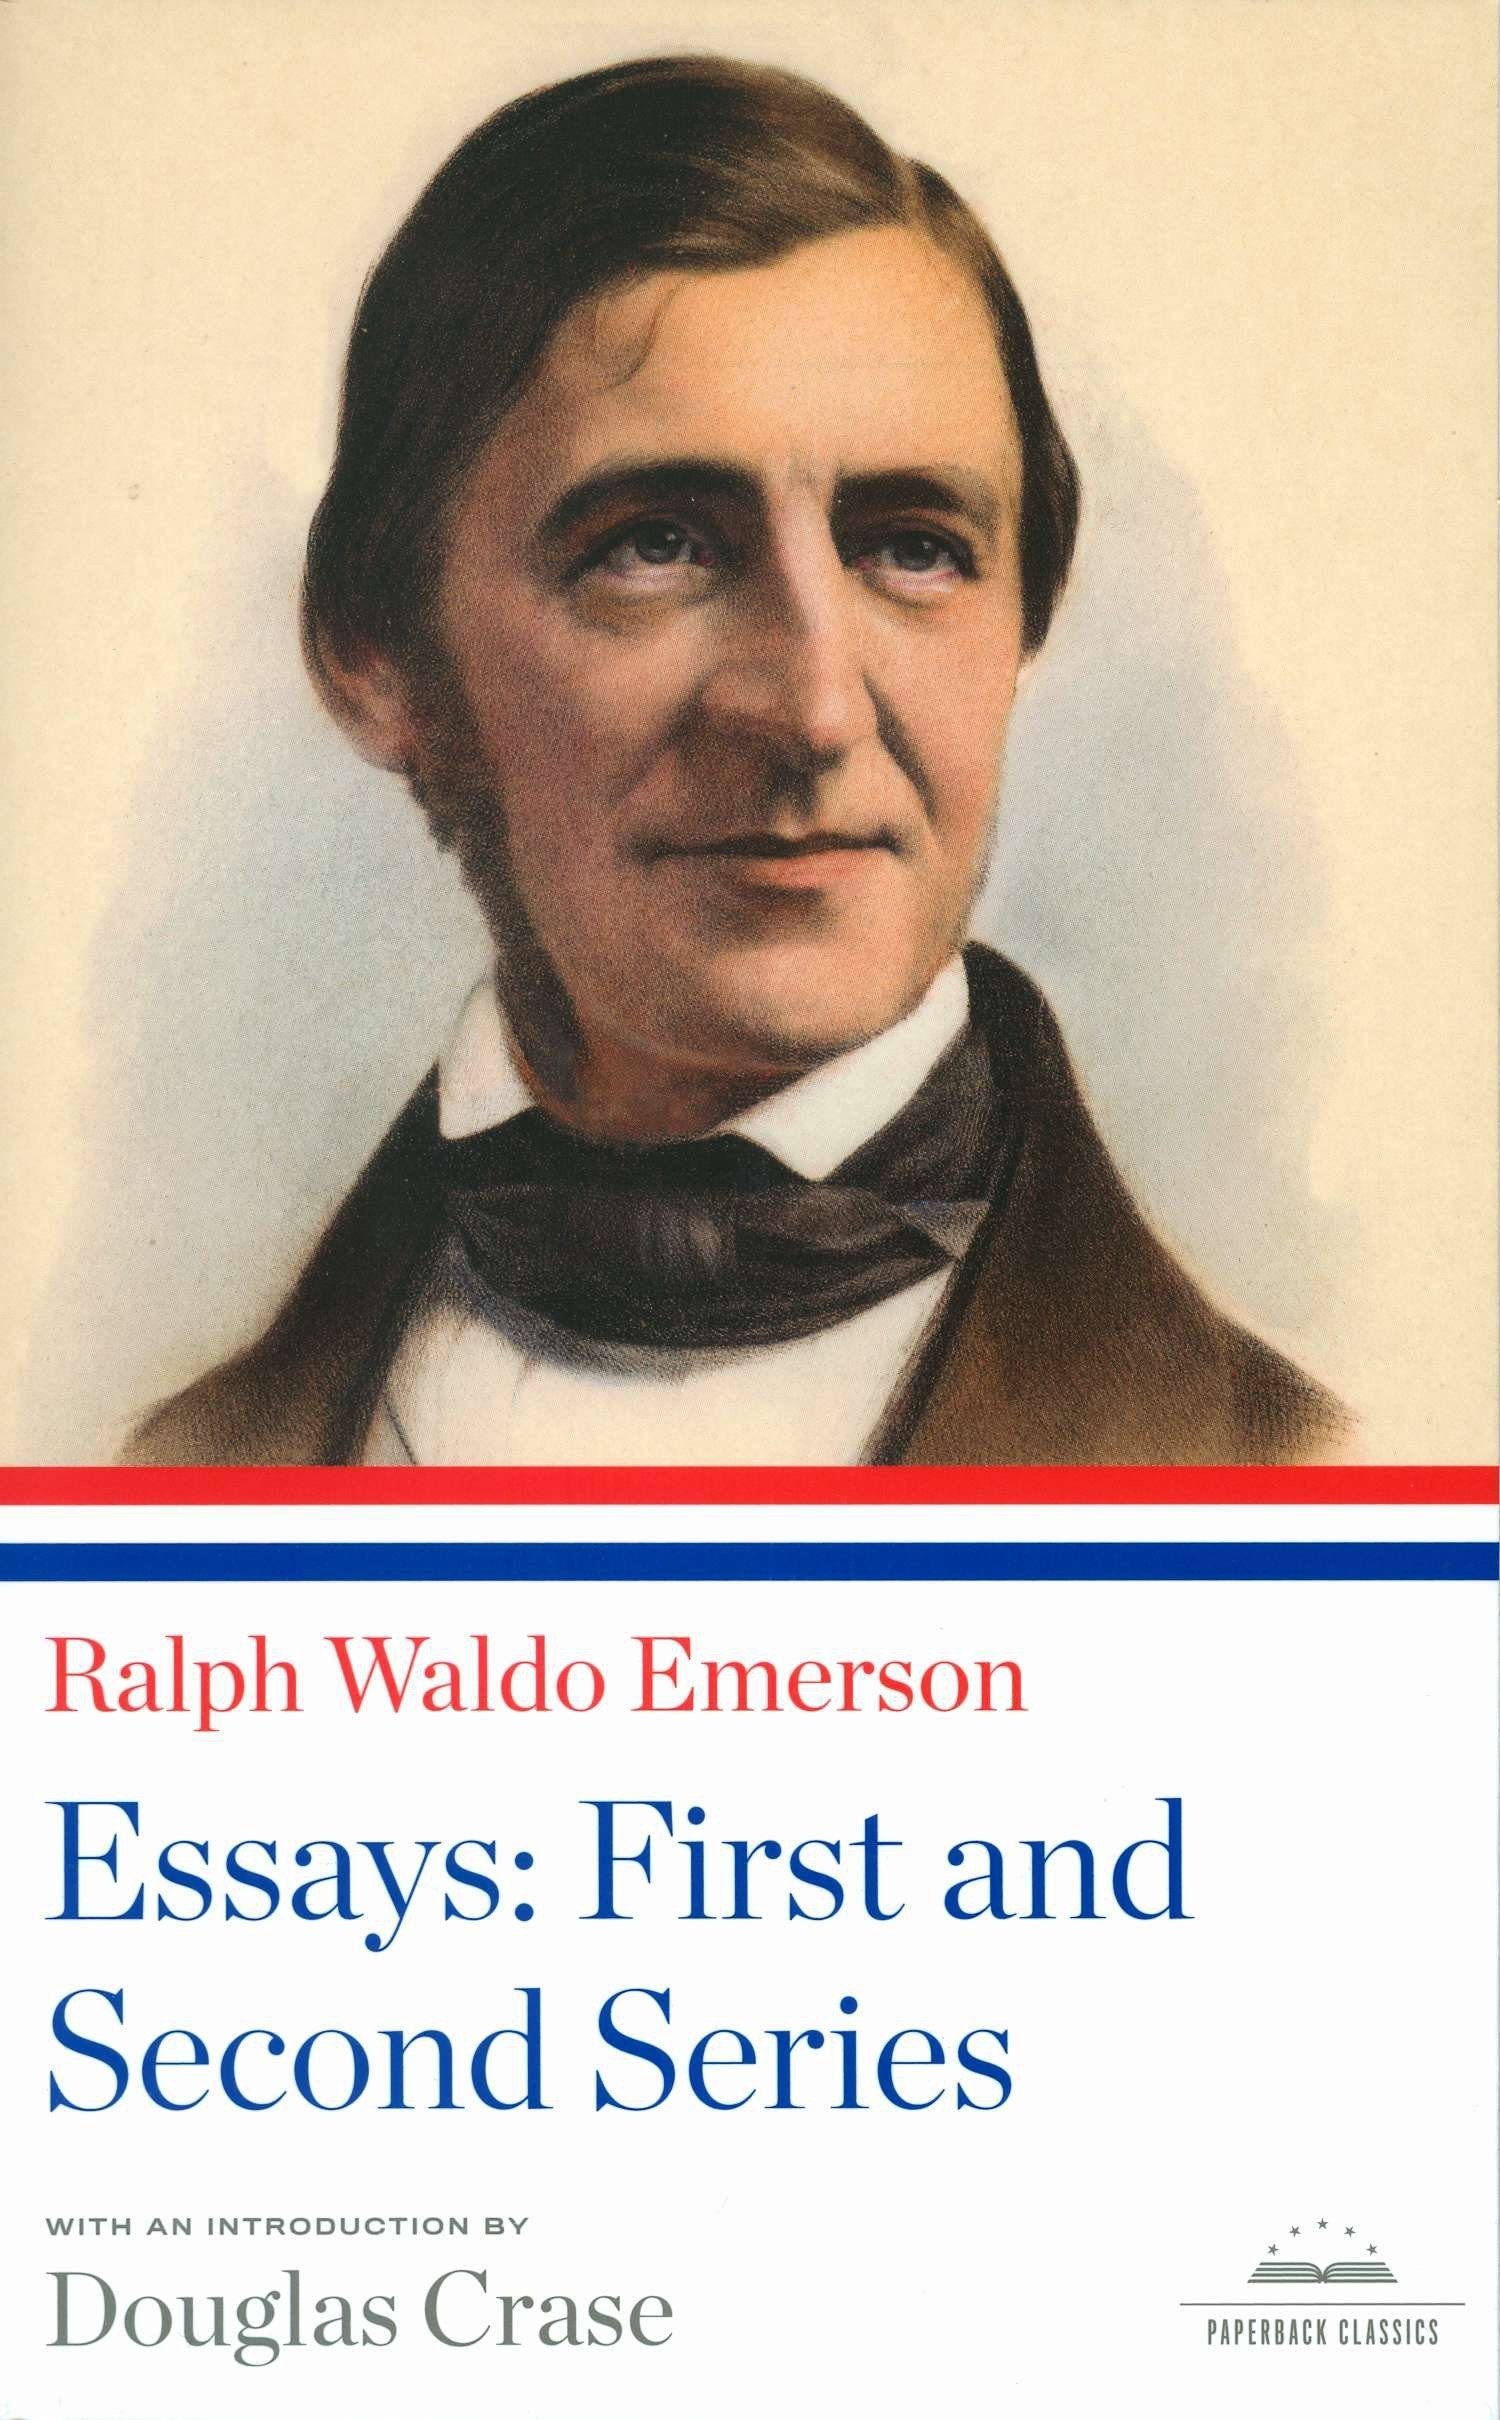 005 81bbtjzup6l Essay Example Emerson Dreaded Essays Self Reliance And Other Second Series Nature Full